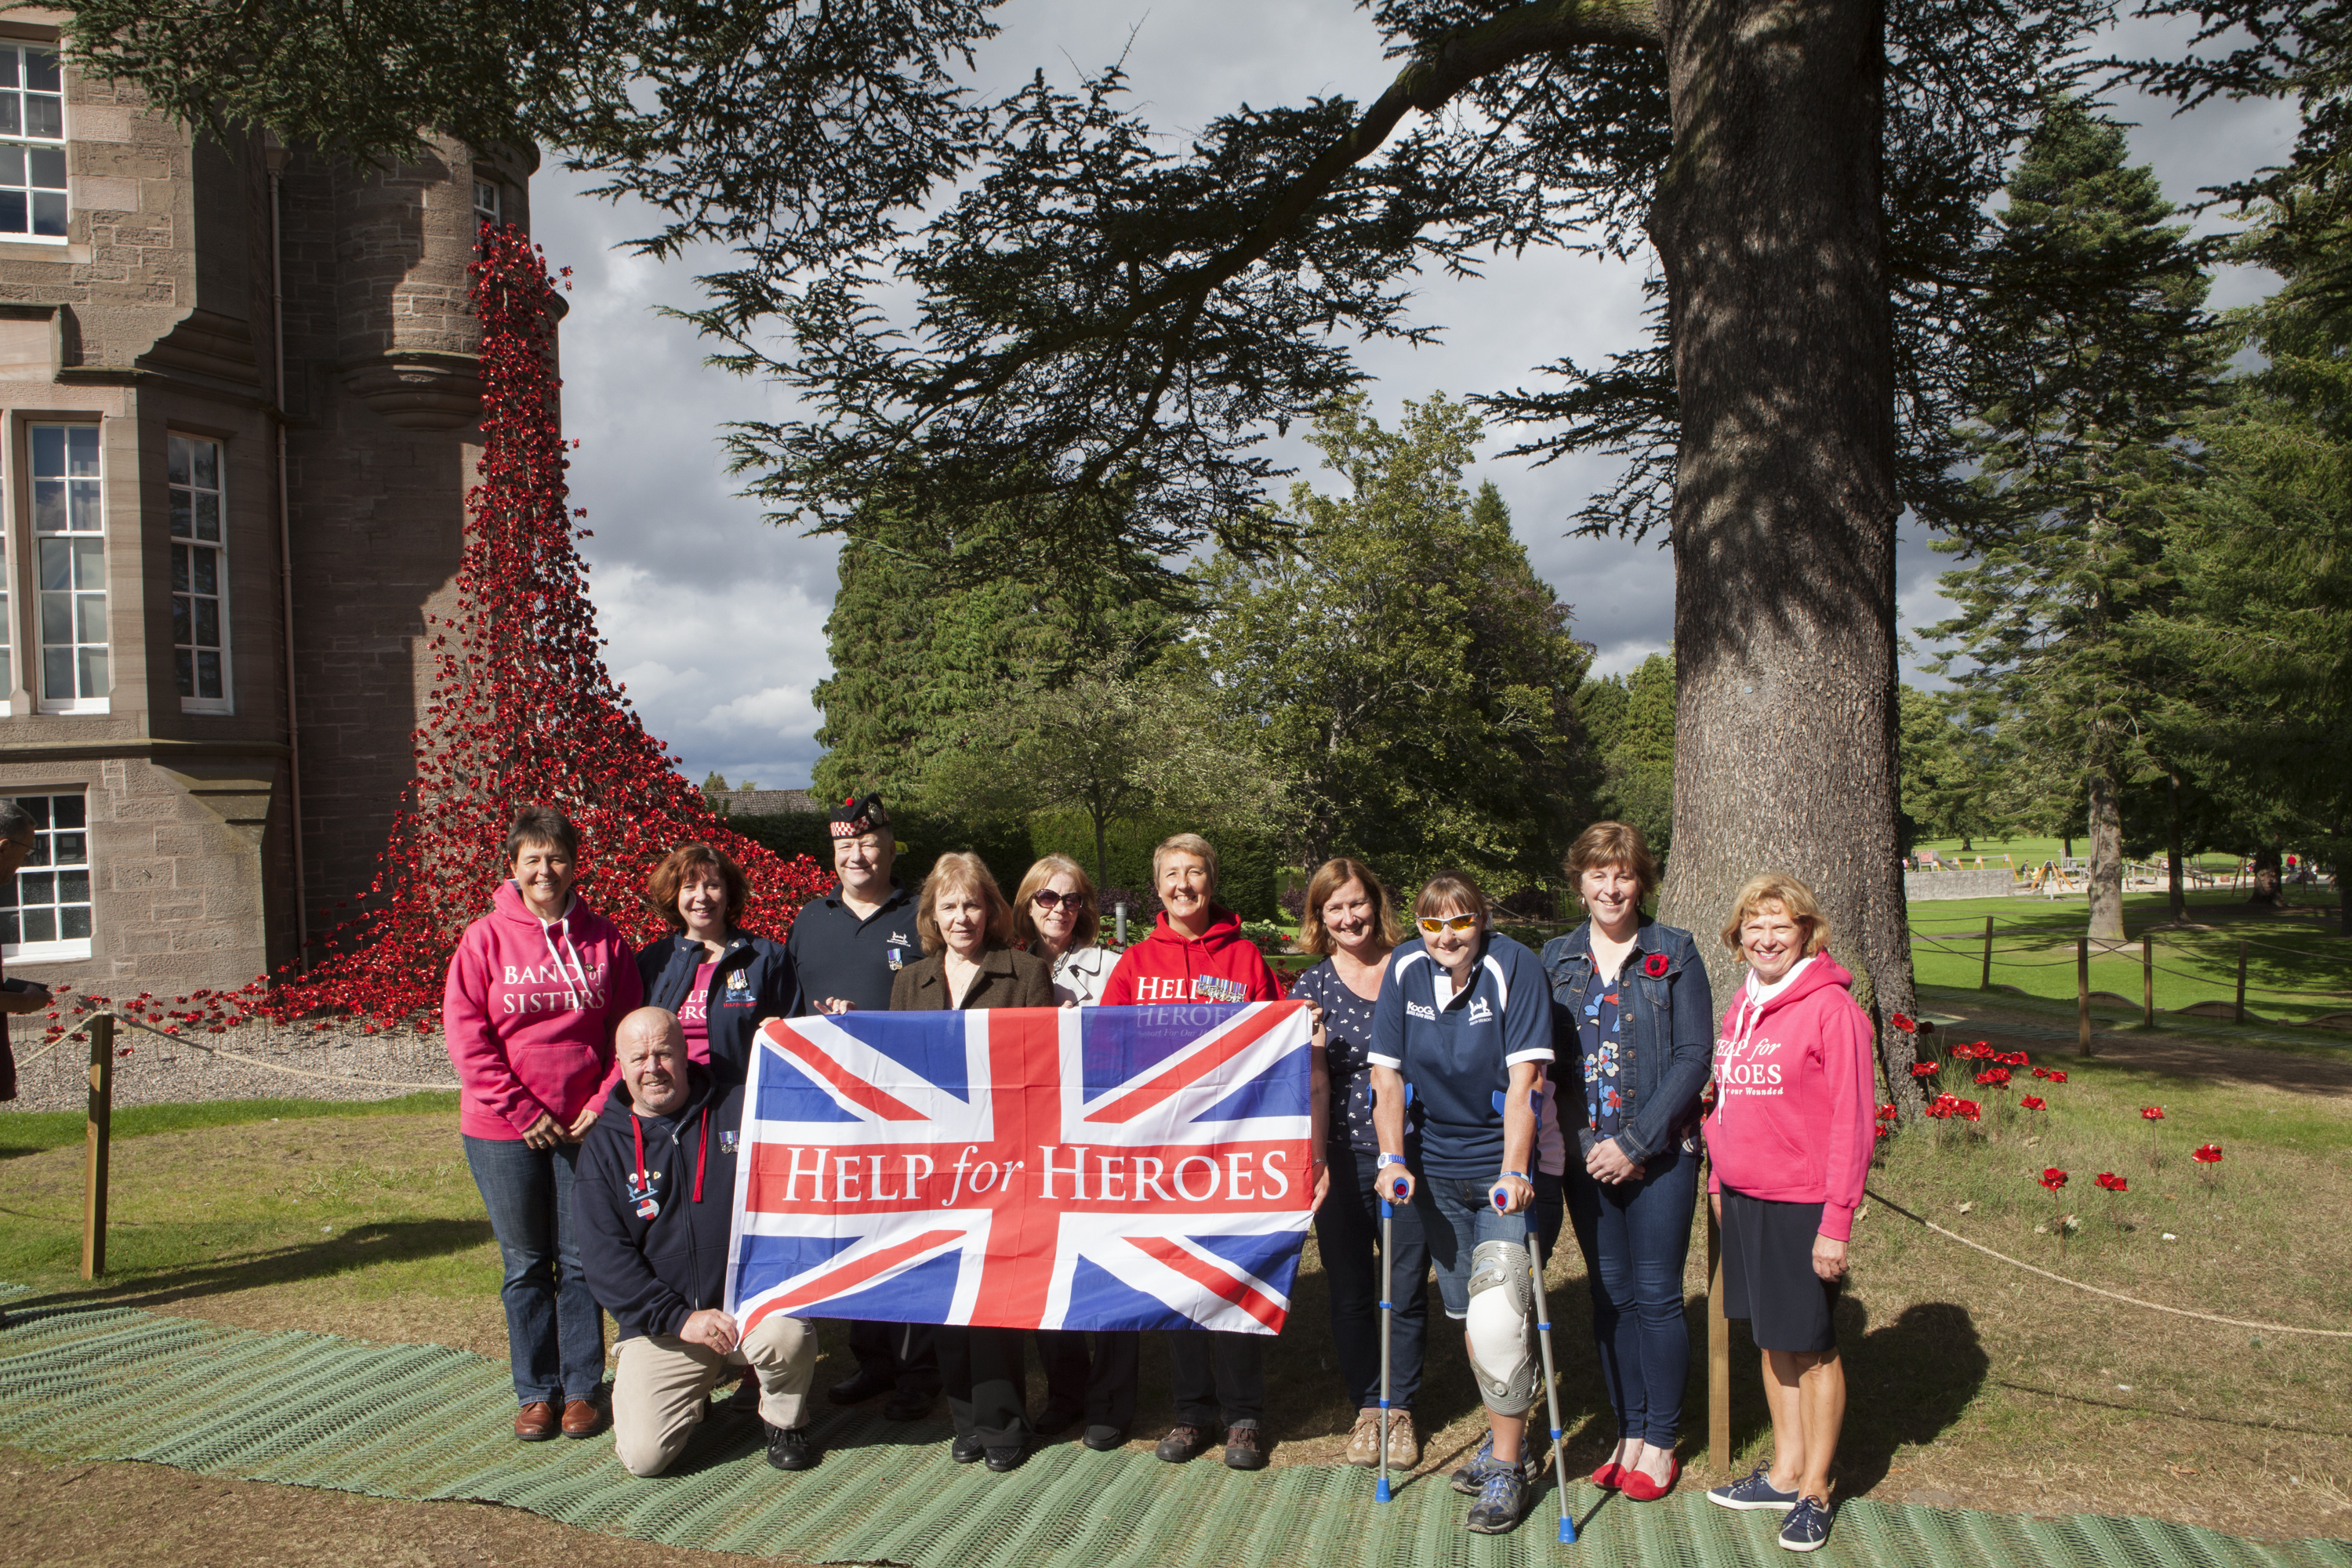 The Help for Heroes group who visited the weeping poppies display in Perth.